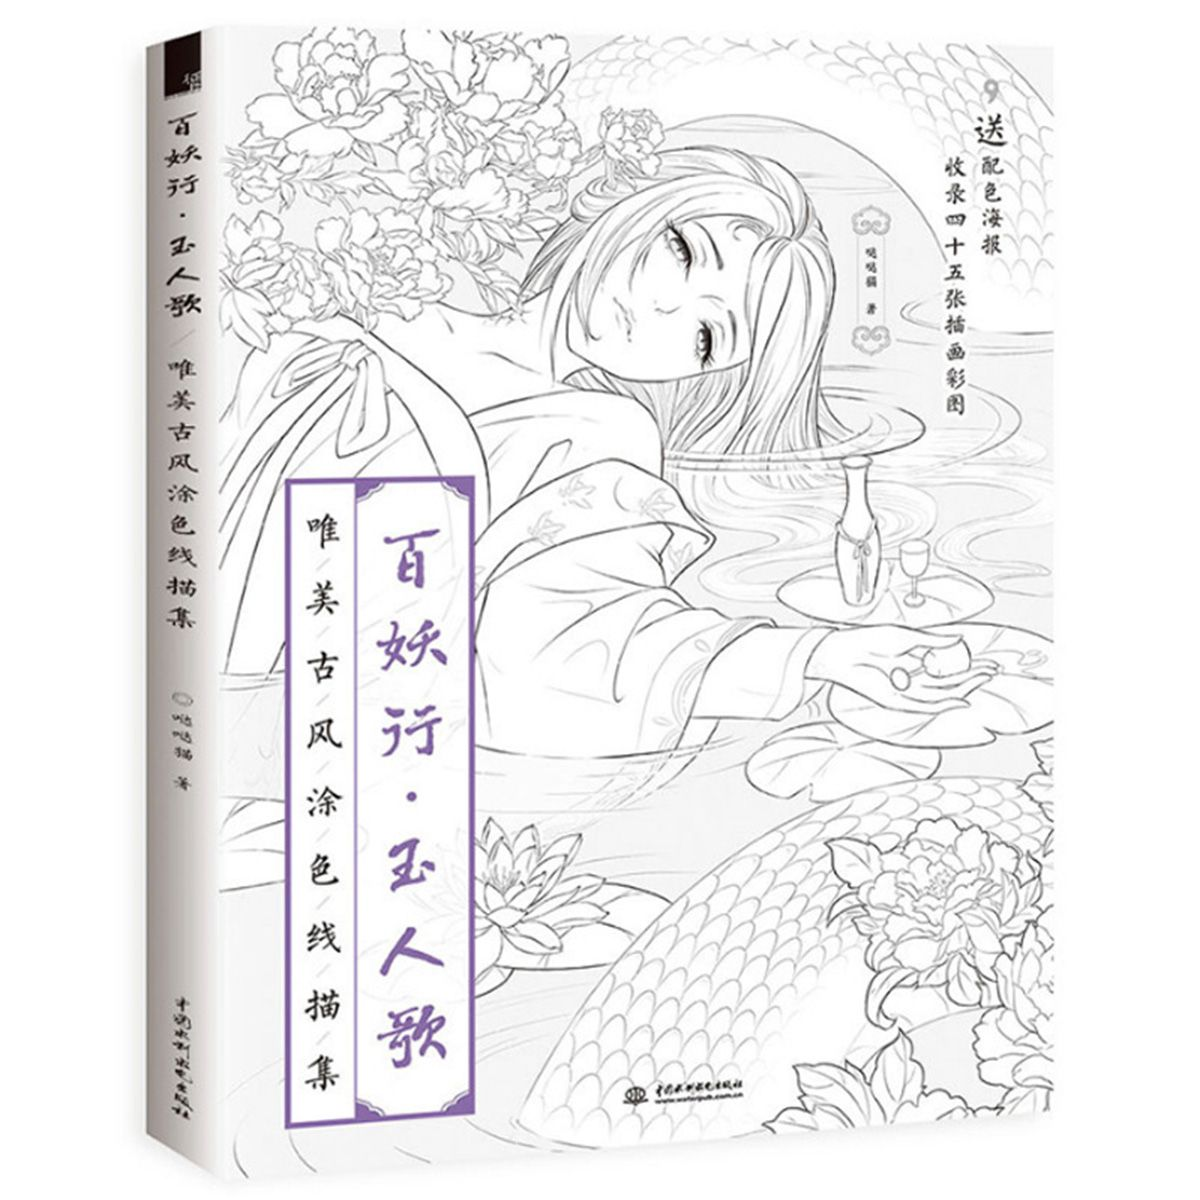 Chinese Coloring Books for Adults Kids Classical Comic Hand-painted Drawing Book Line Sketch Drawing Textbook Relax StressChinese Coloring Books for Adults Kids Classical Comic Hand-painted Drawing Book Line Sketch Drawing Textbook Relax Stress